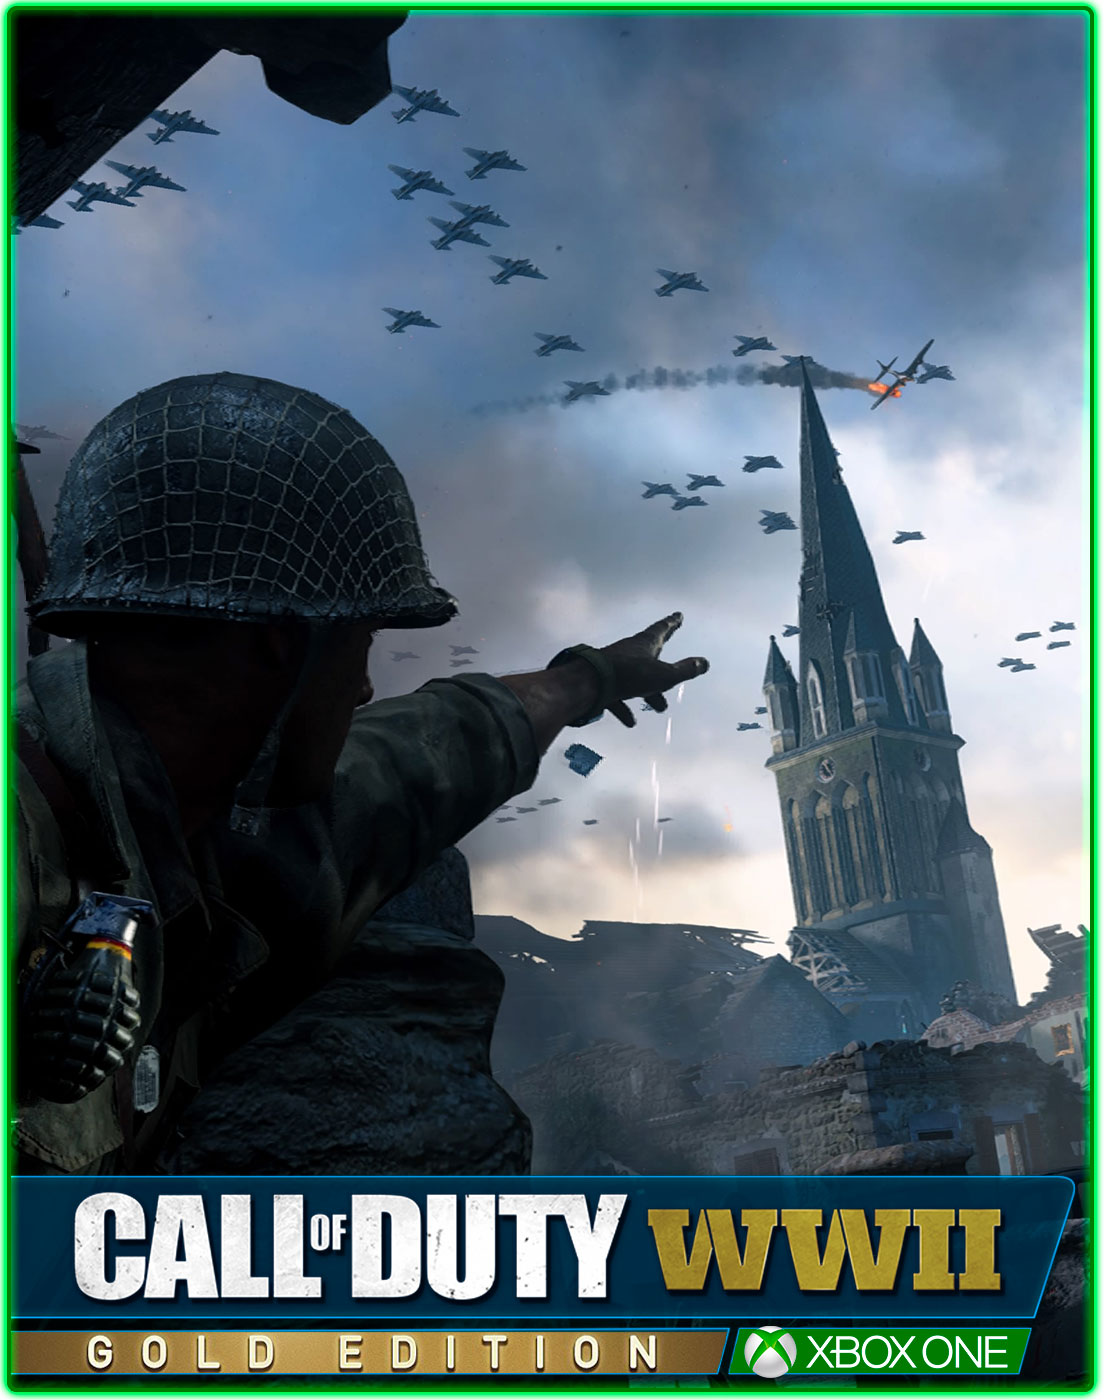 Call of Duty WWII Gold Edition(XBOX ONE)